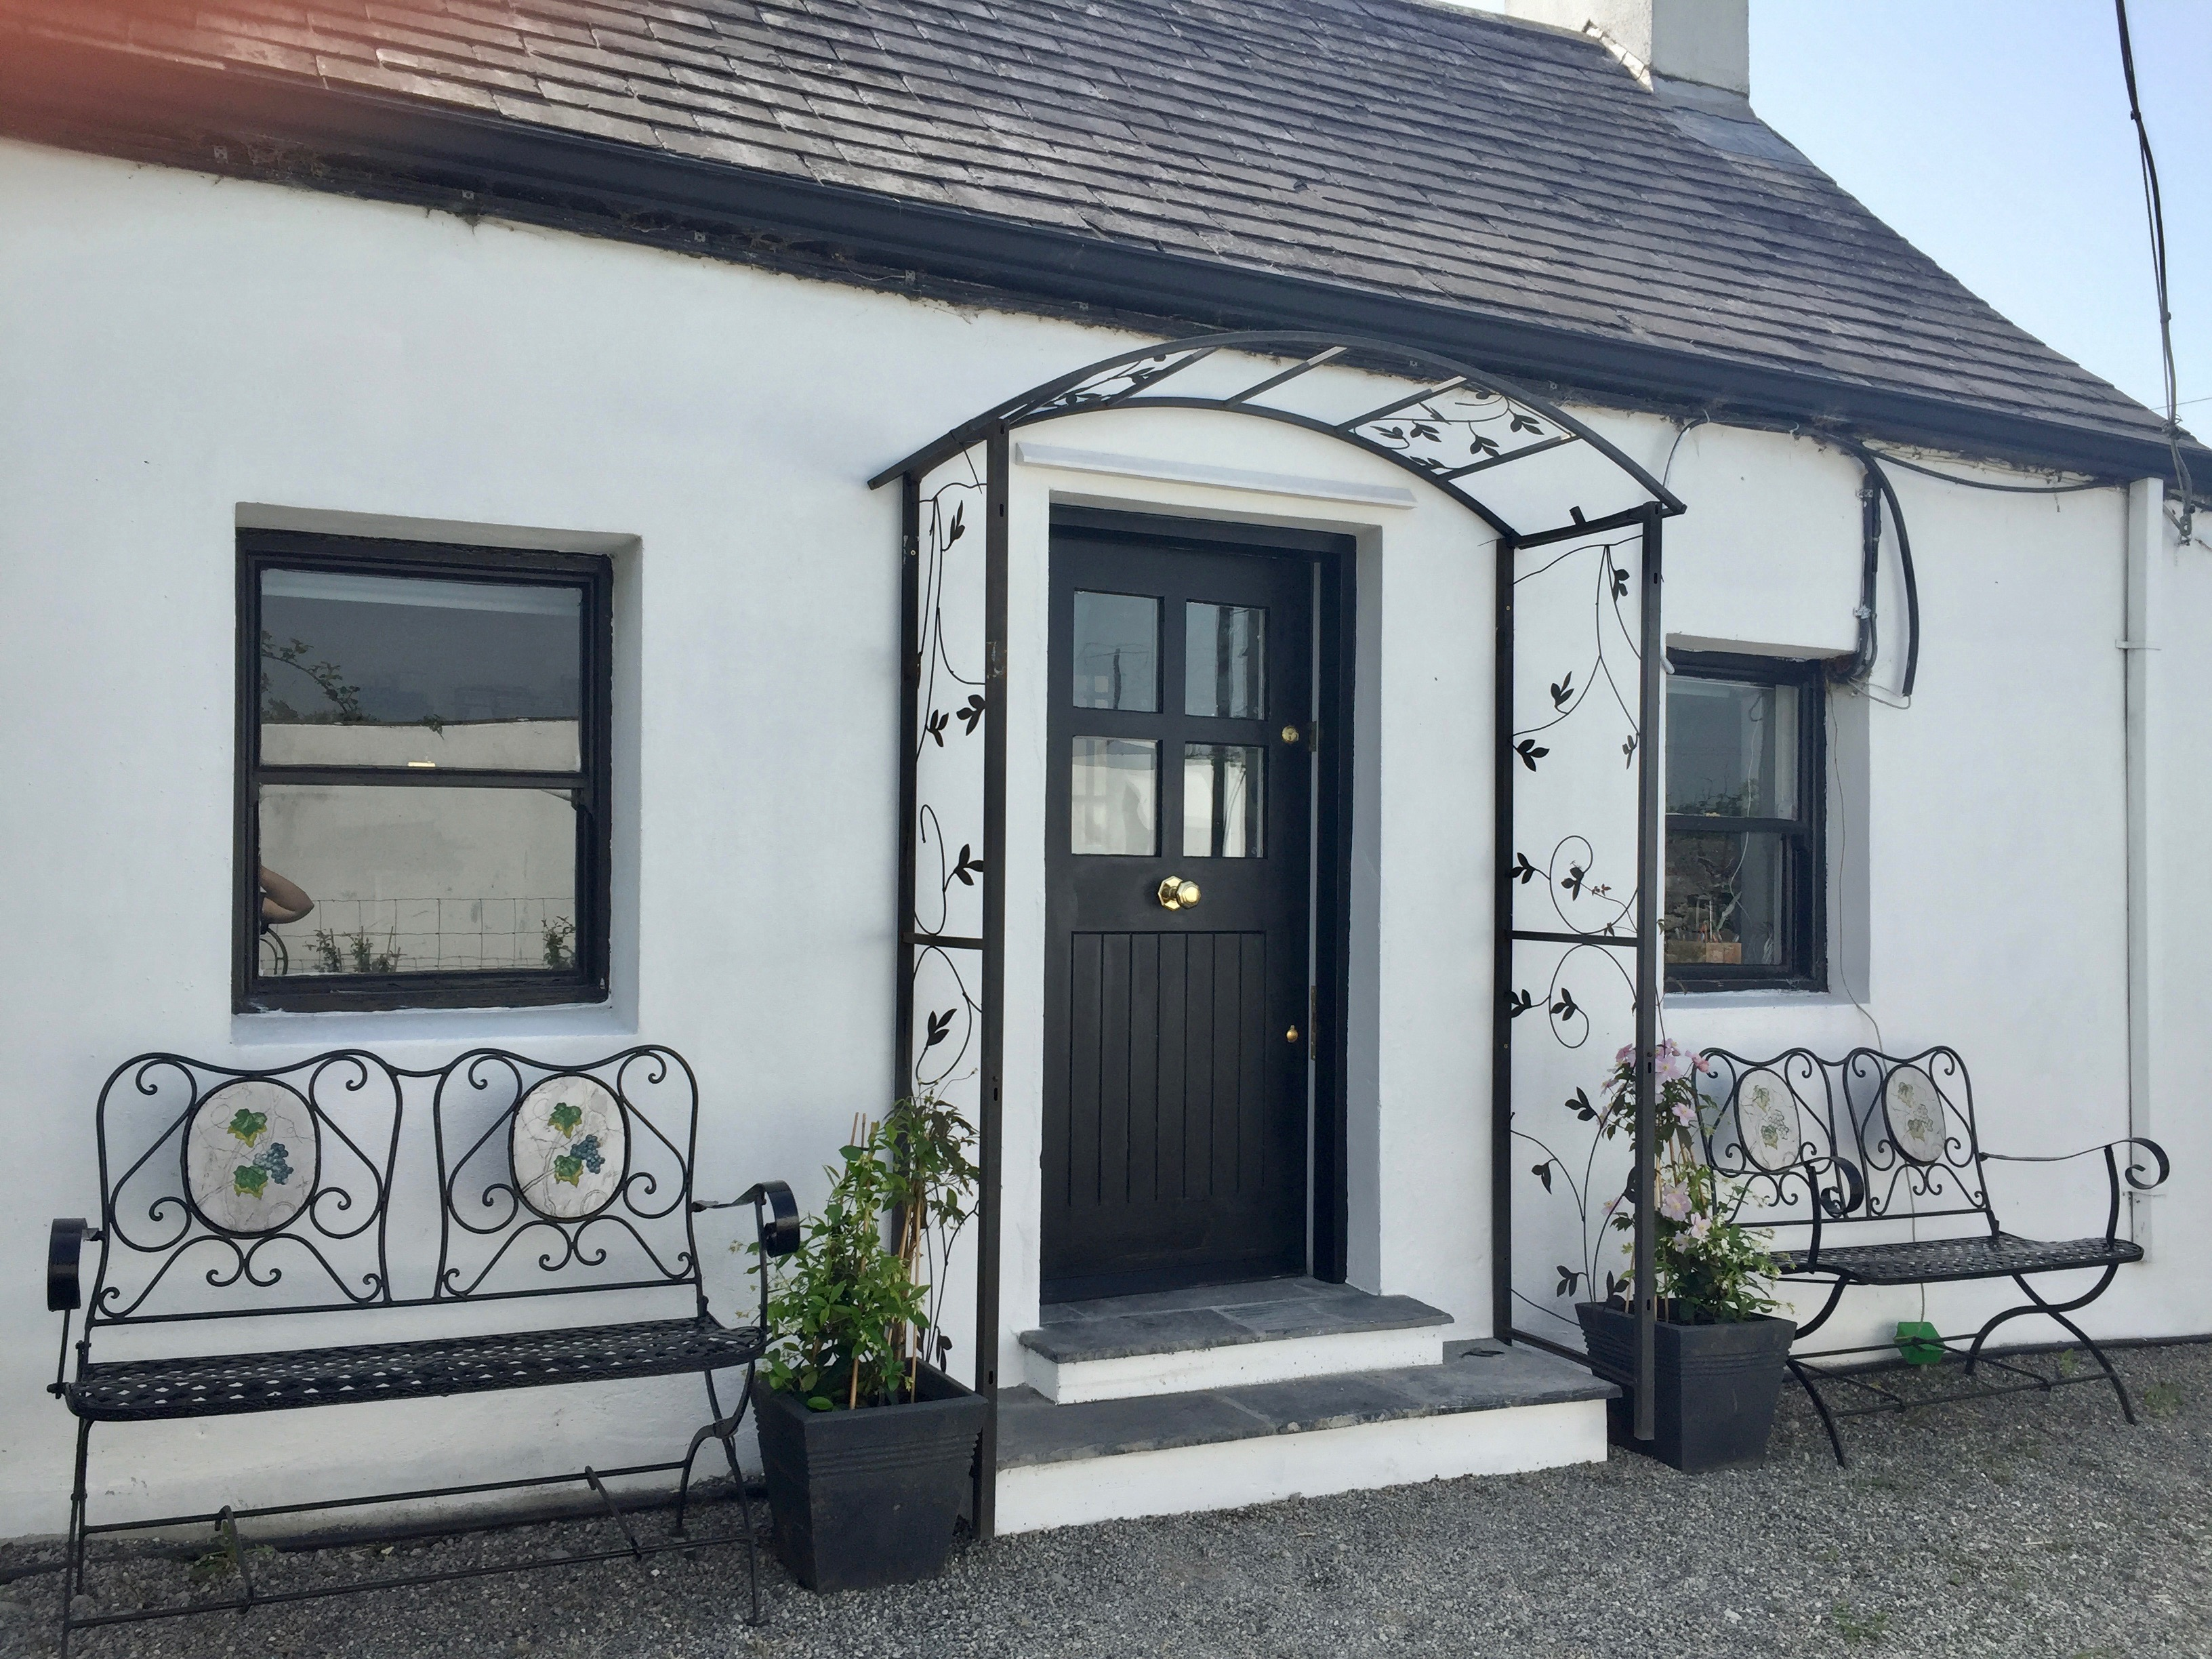 THE BEST Restaurants & Places to Eat in Bagenalstown 2020